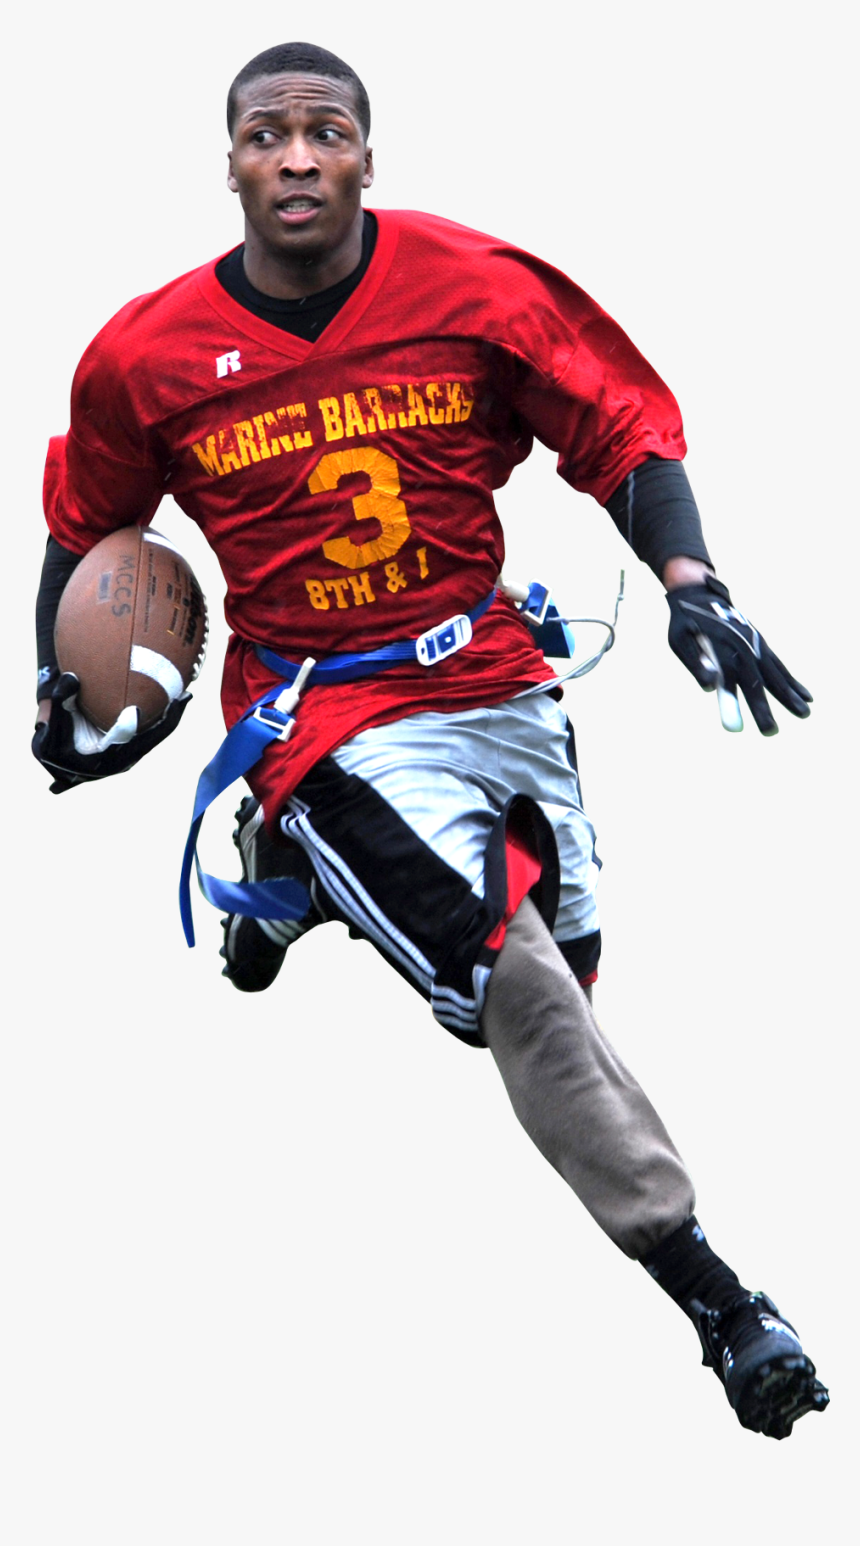 American Football Player Png Transparent Image - Football Player With Football Png, Png Download, Free Download